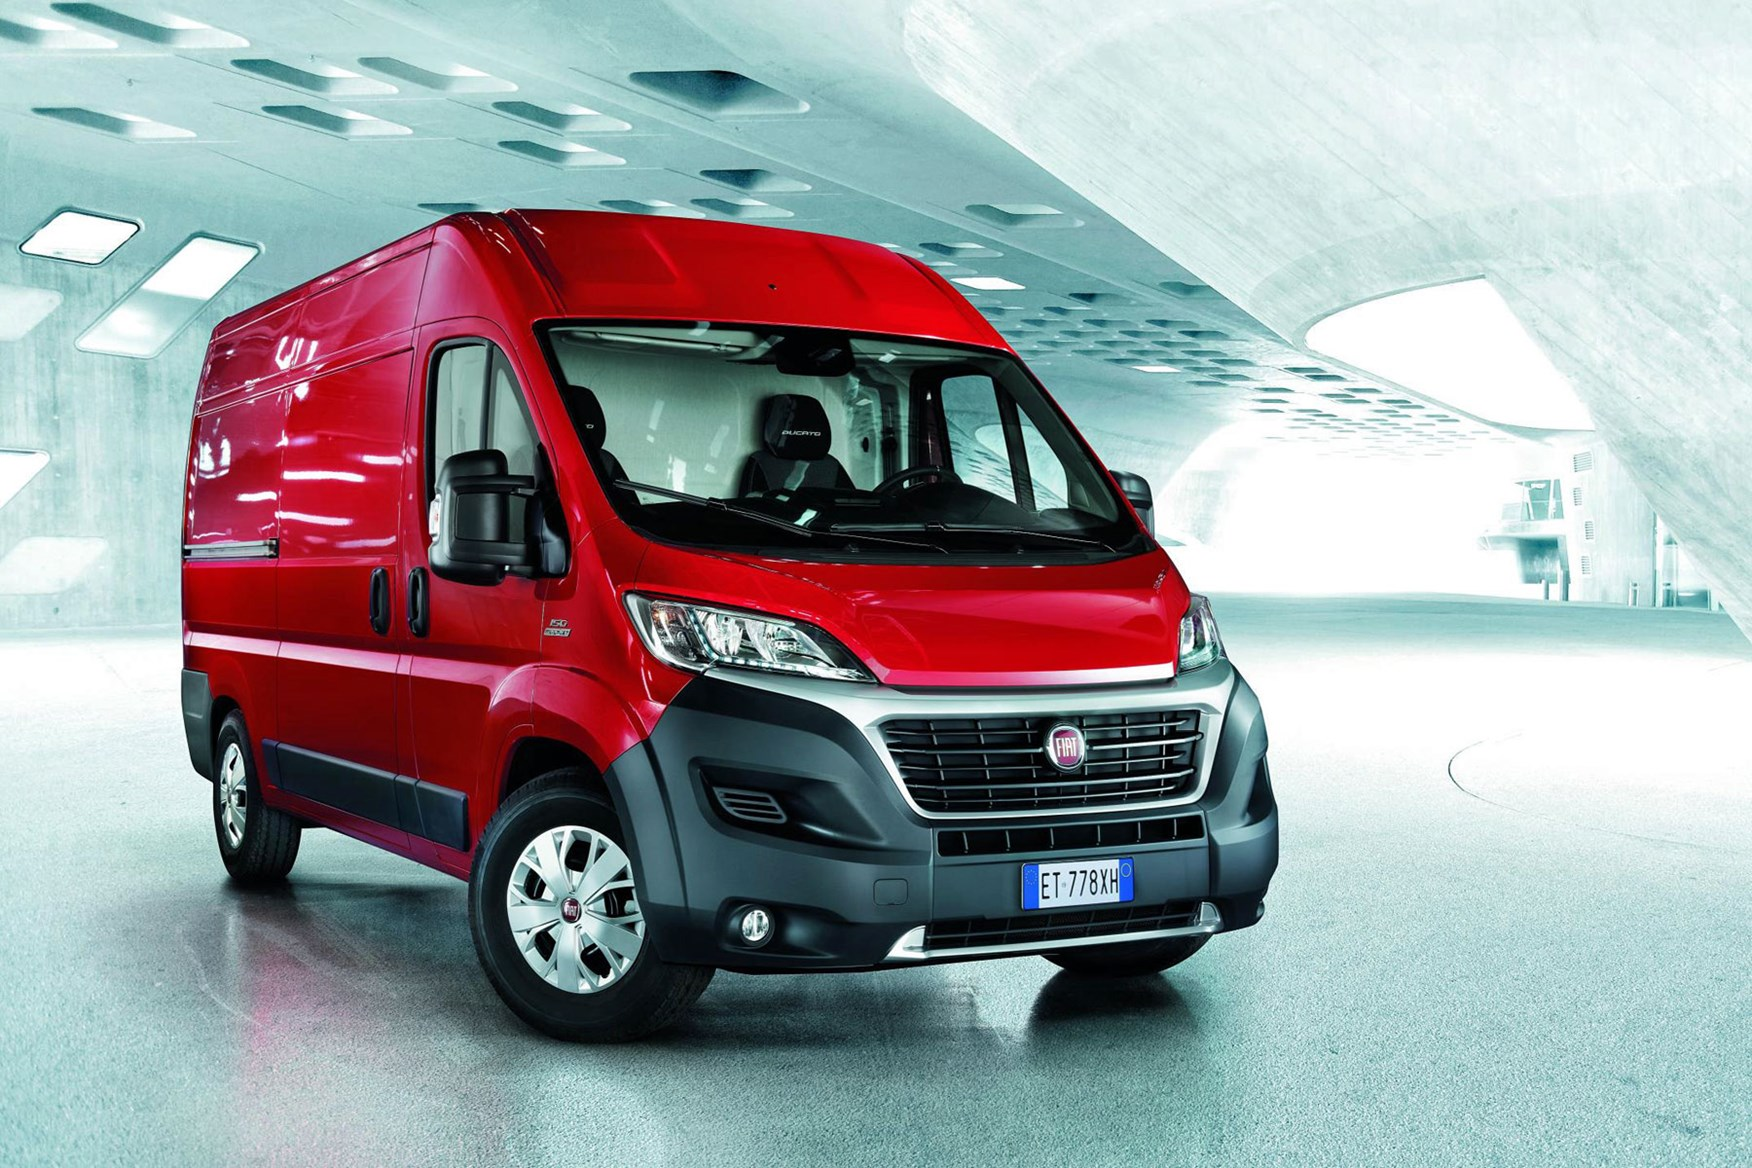 Fiat Ducato review - 2016 Euro 6 engines, front view, red